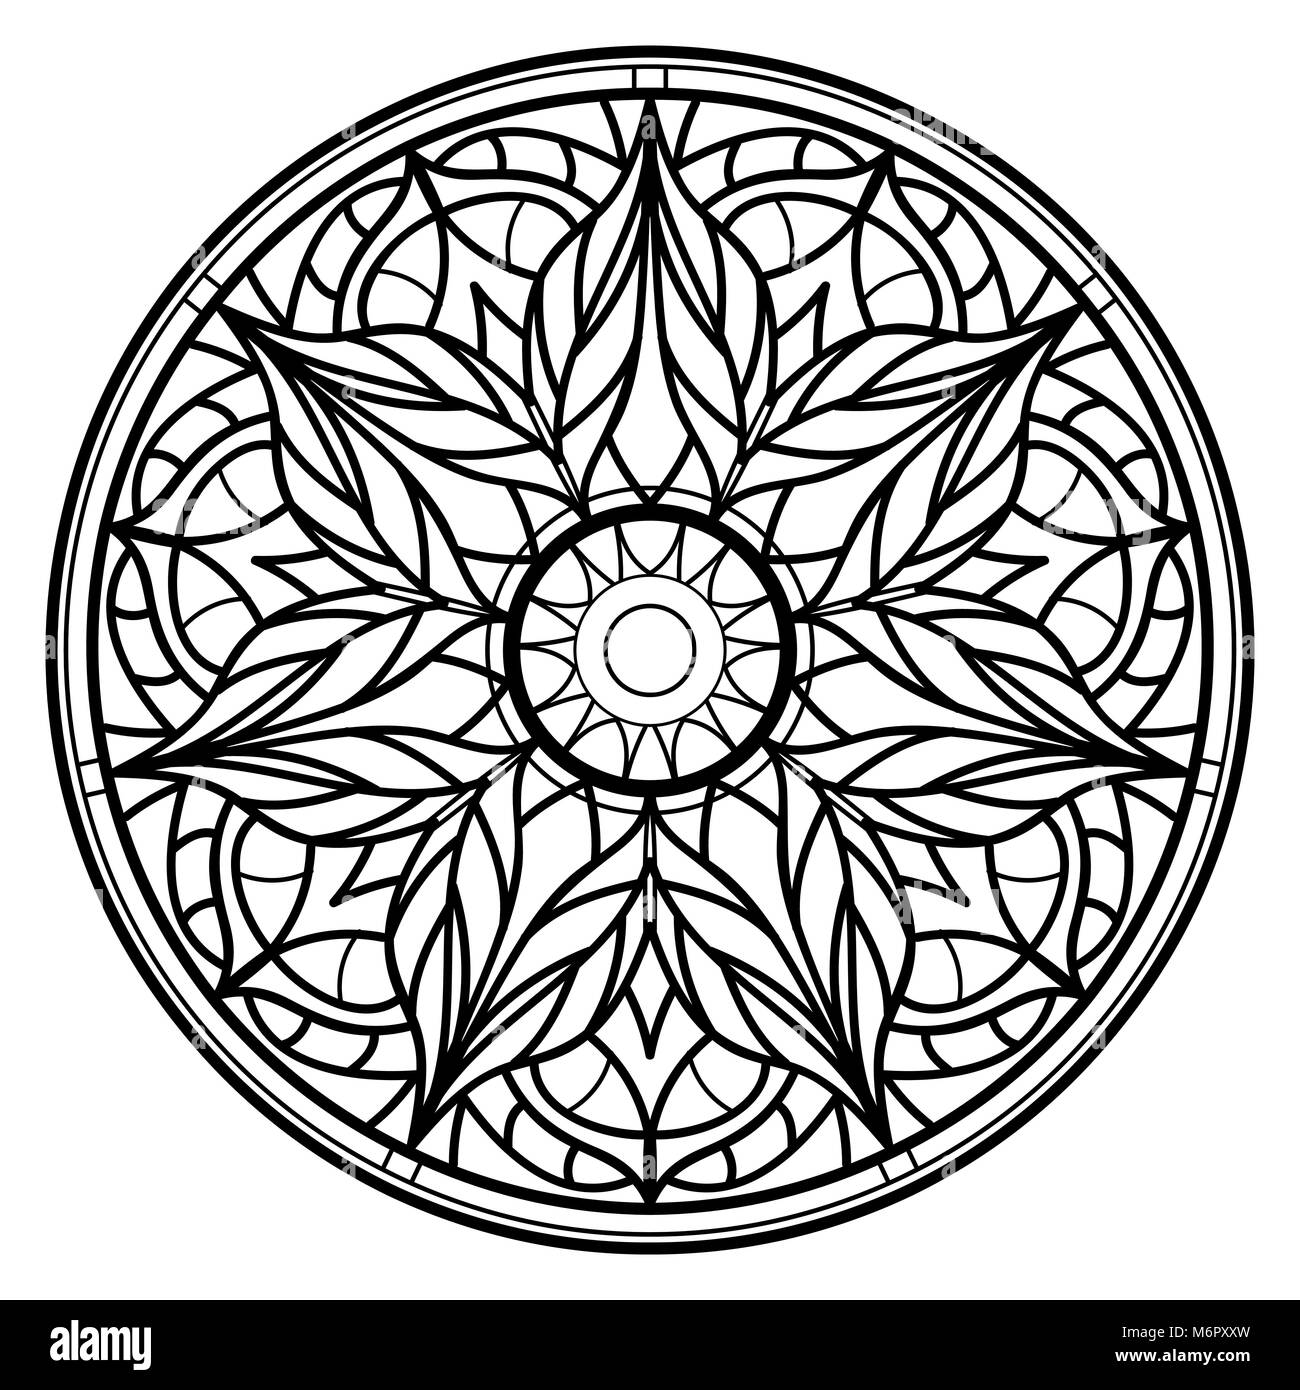 Mandalas For Coloring Book Decorative Round Ornaments Unusual Flower Shape Oriental Vector Anti Stress Therapy Patterns Weave Design Elements Yo